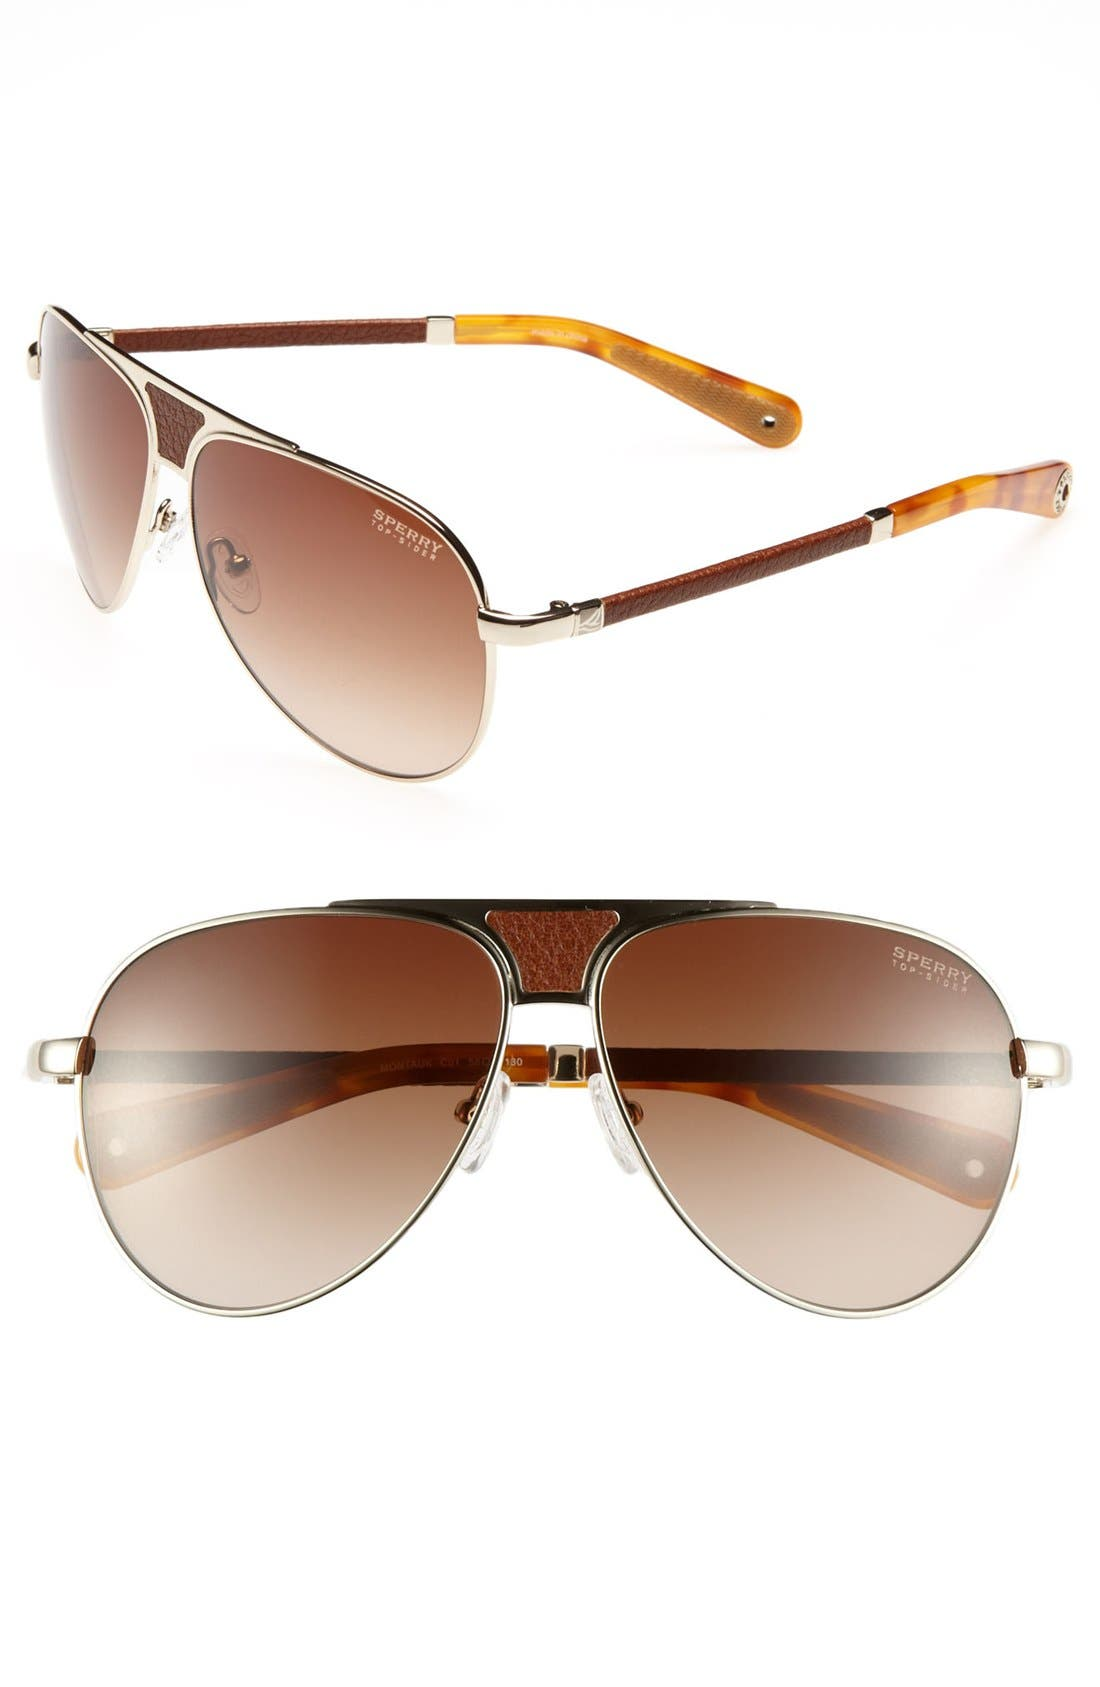 Main Image - Sperry Top-Sider® 'Montauk' 58mm Aviator Sunglasses (Online Only)